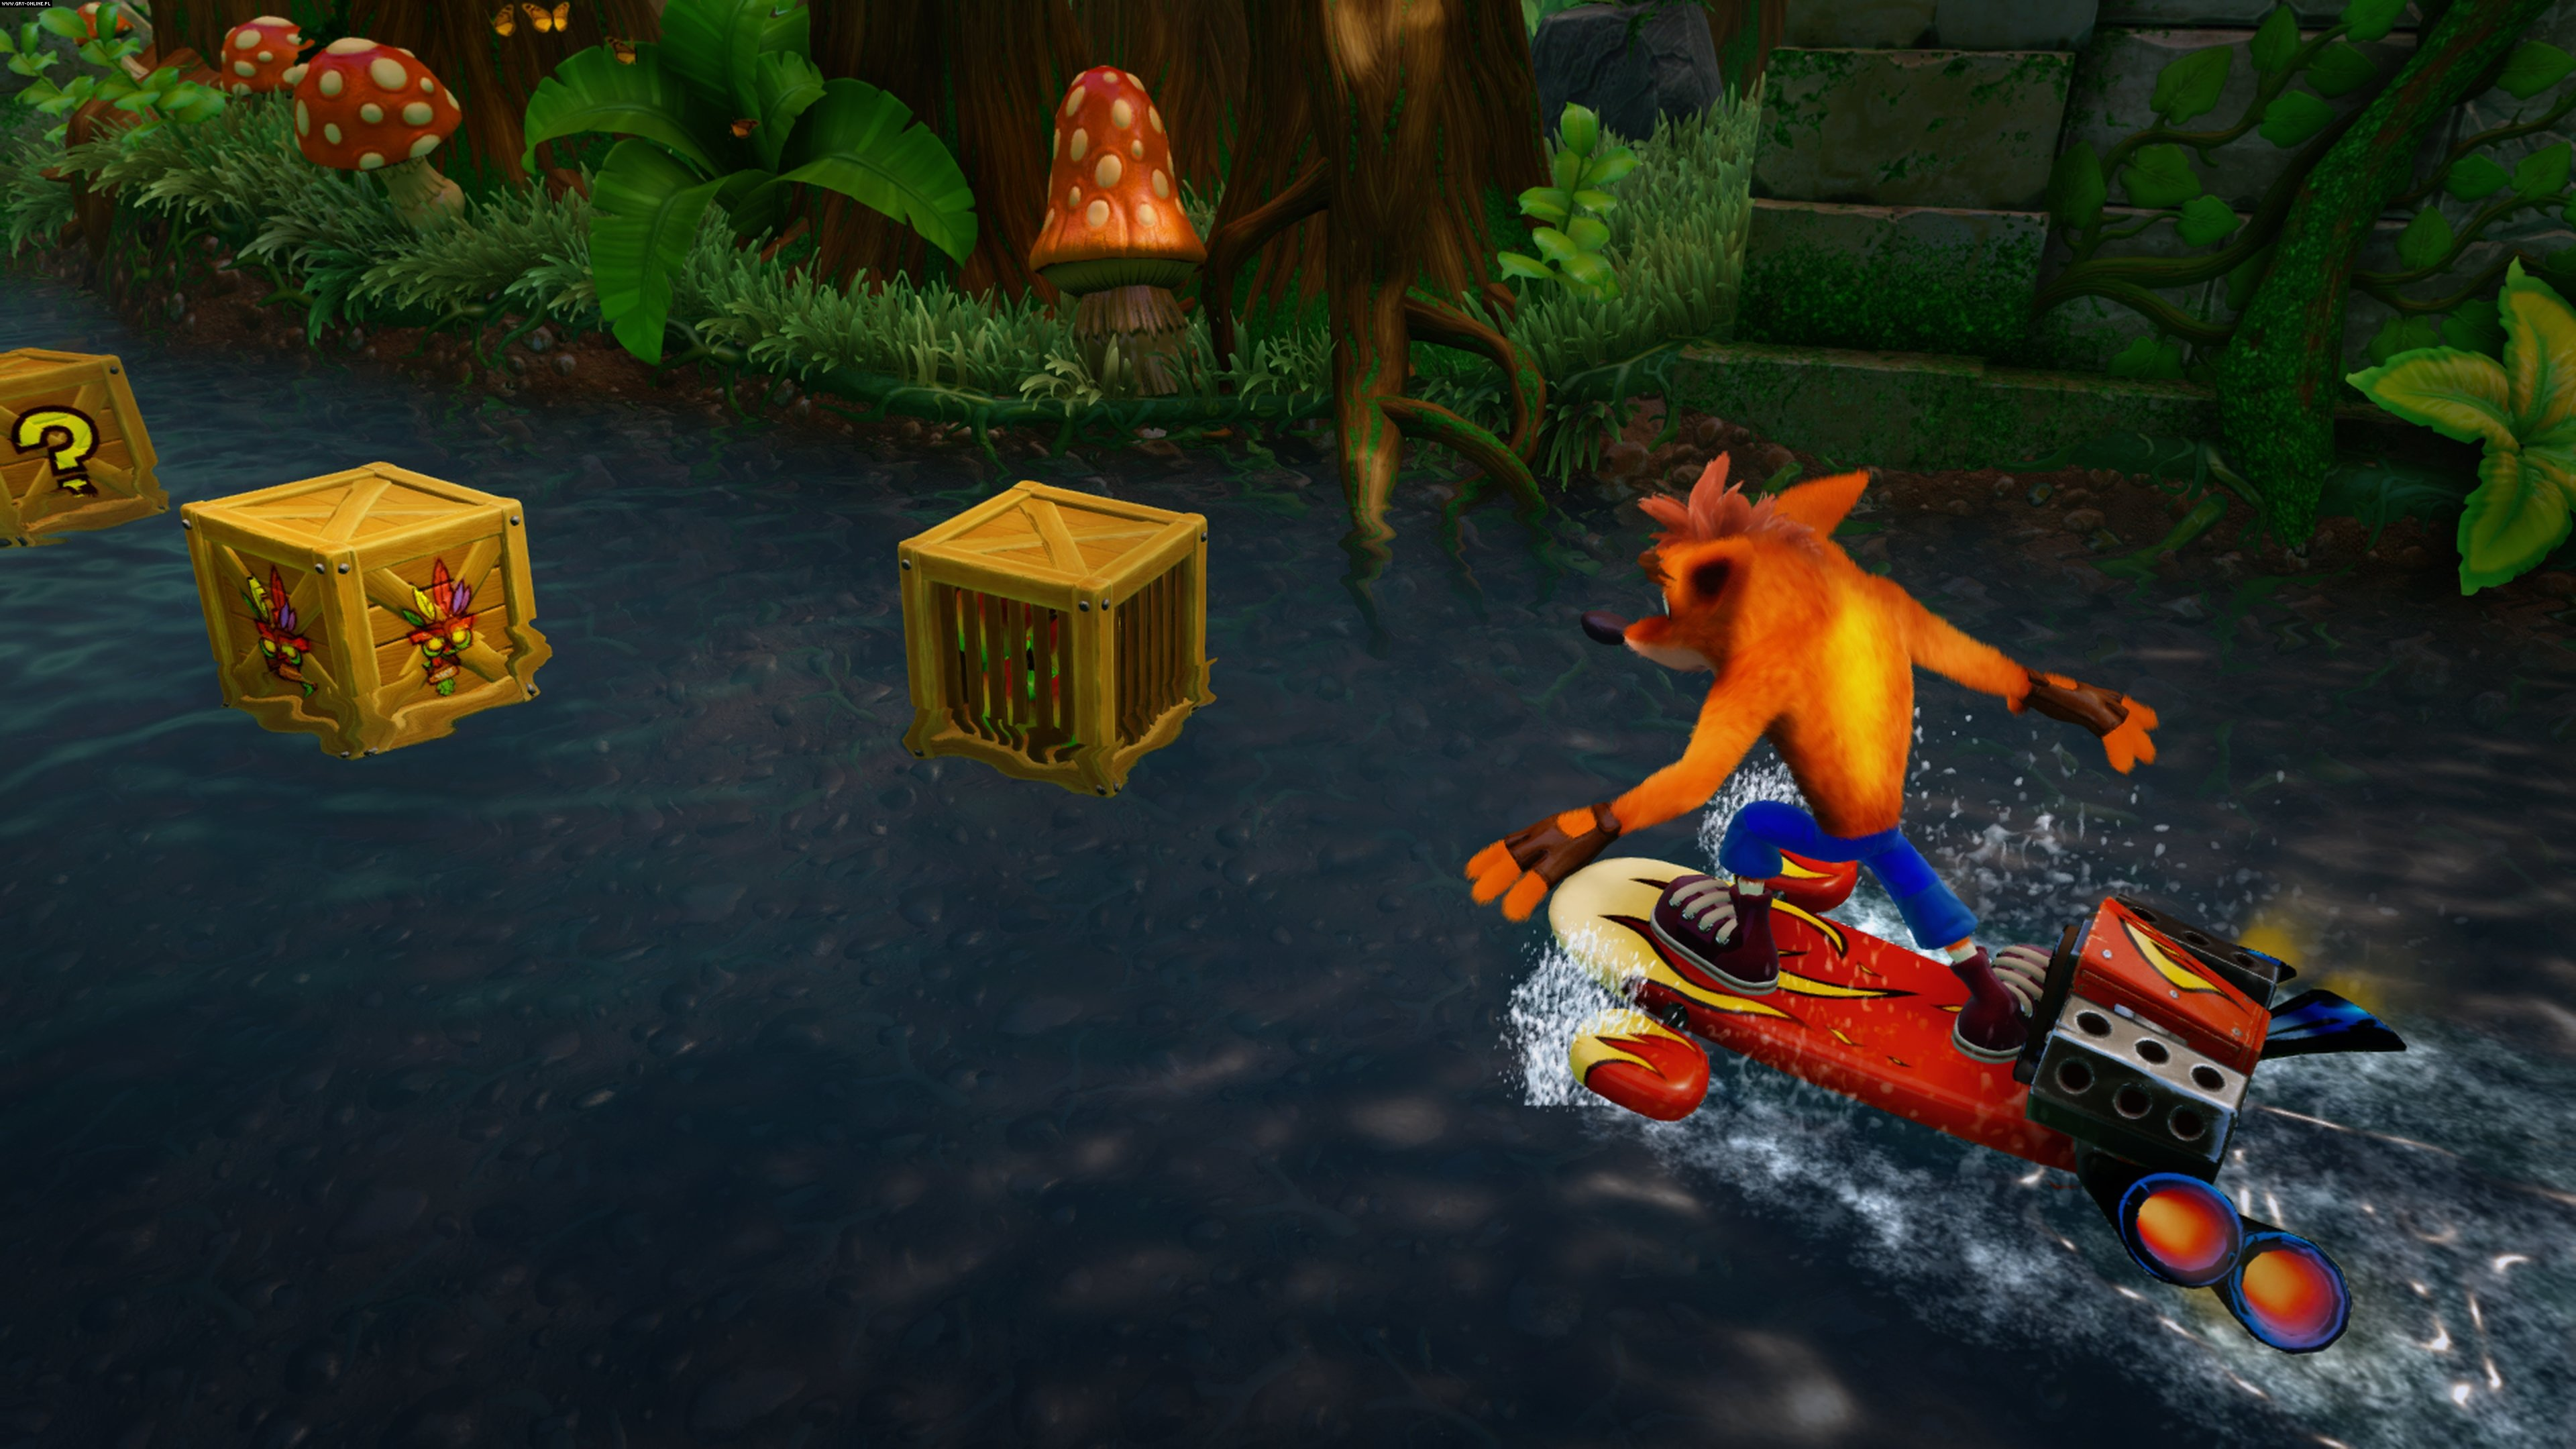 Crash Bandicoot N. Sane Trilogy PS4 Gry Screen 98/115, Vicarious Visions, Activision Blizzard